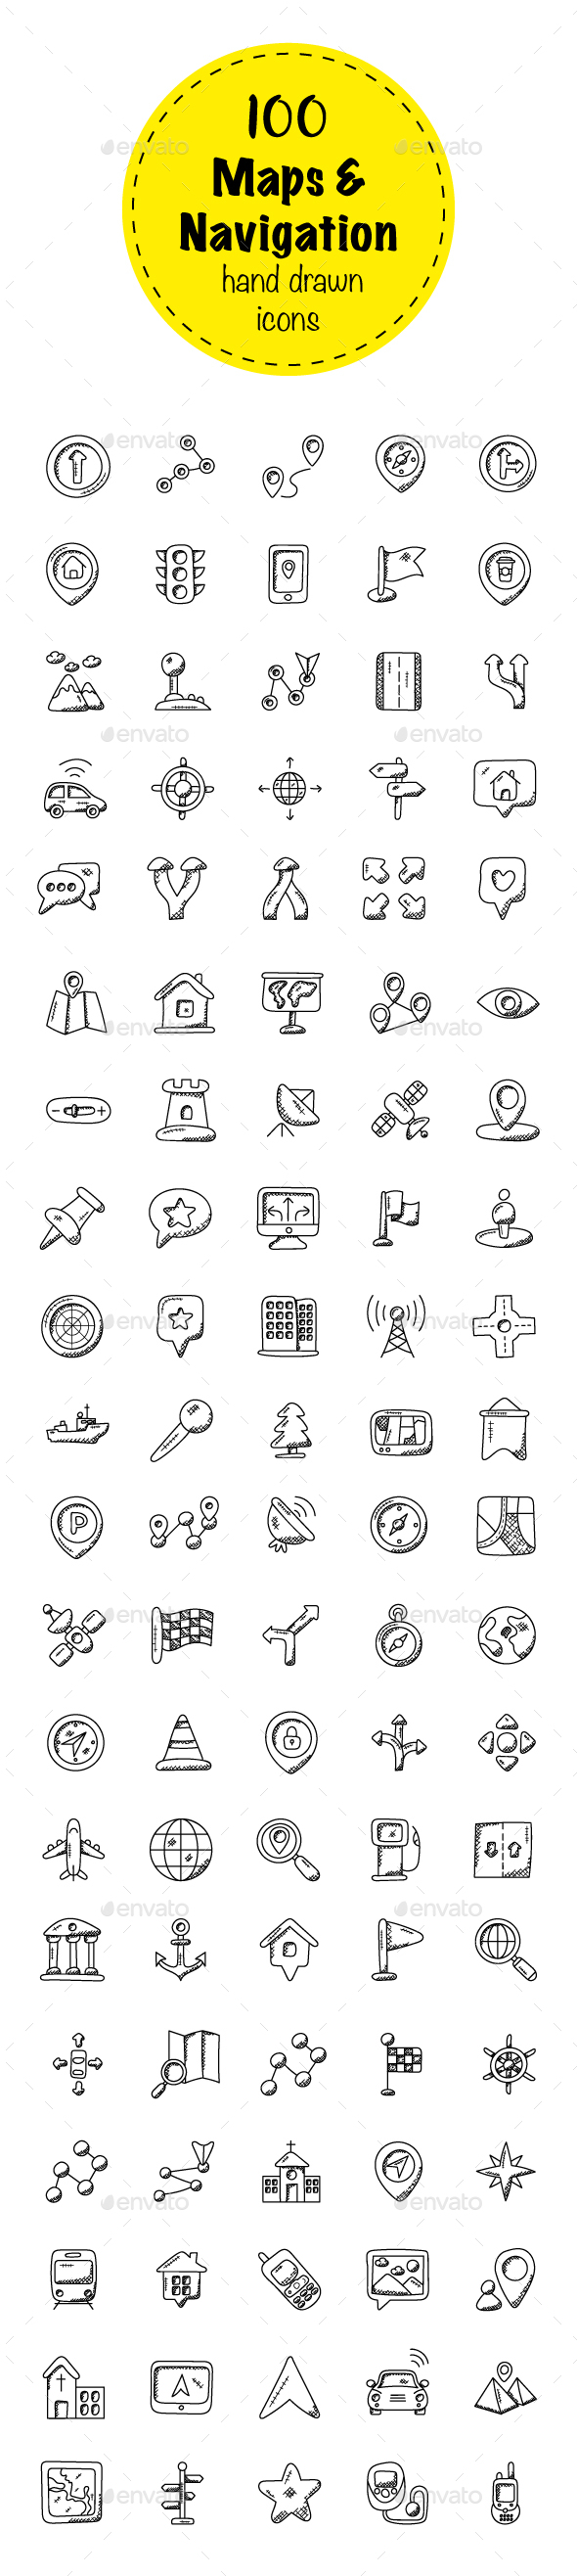 100 Maps And Navigation Doodle Icon - Icons